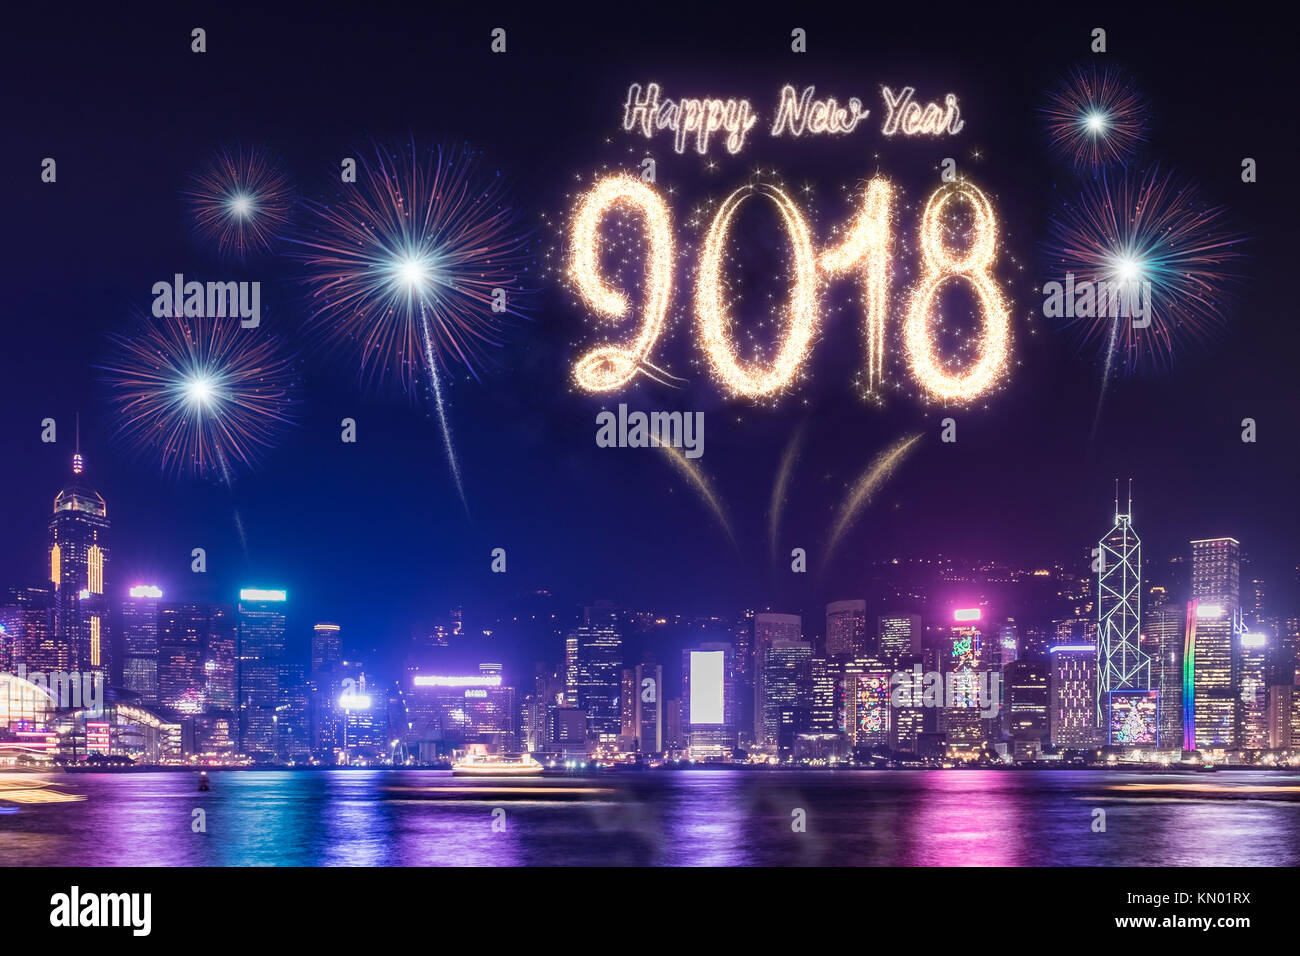 happy new year 2018 firework over cityscape building near sea at night time celebrationholiday festival greeting cardcountdown time